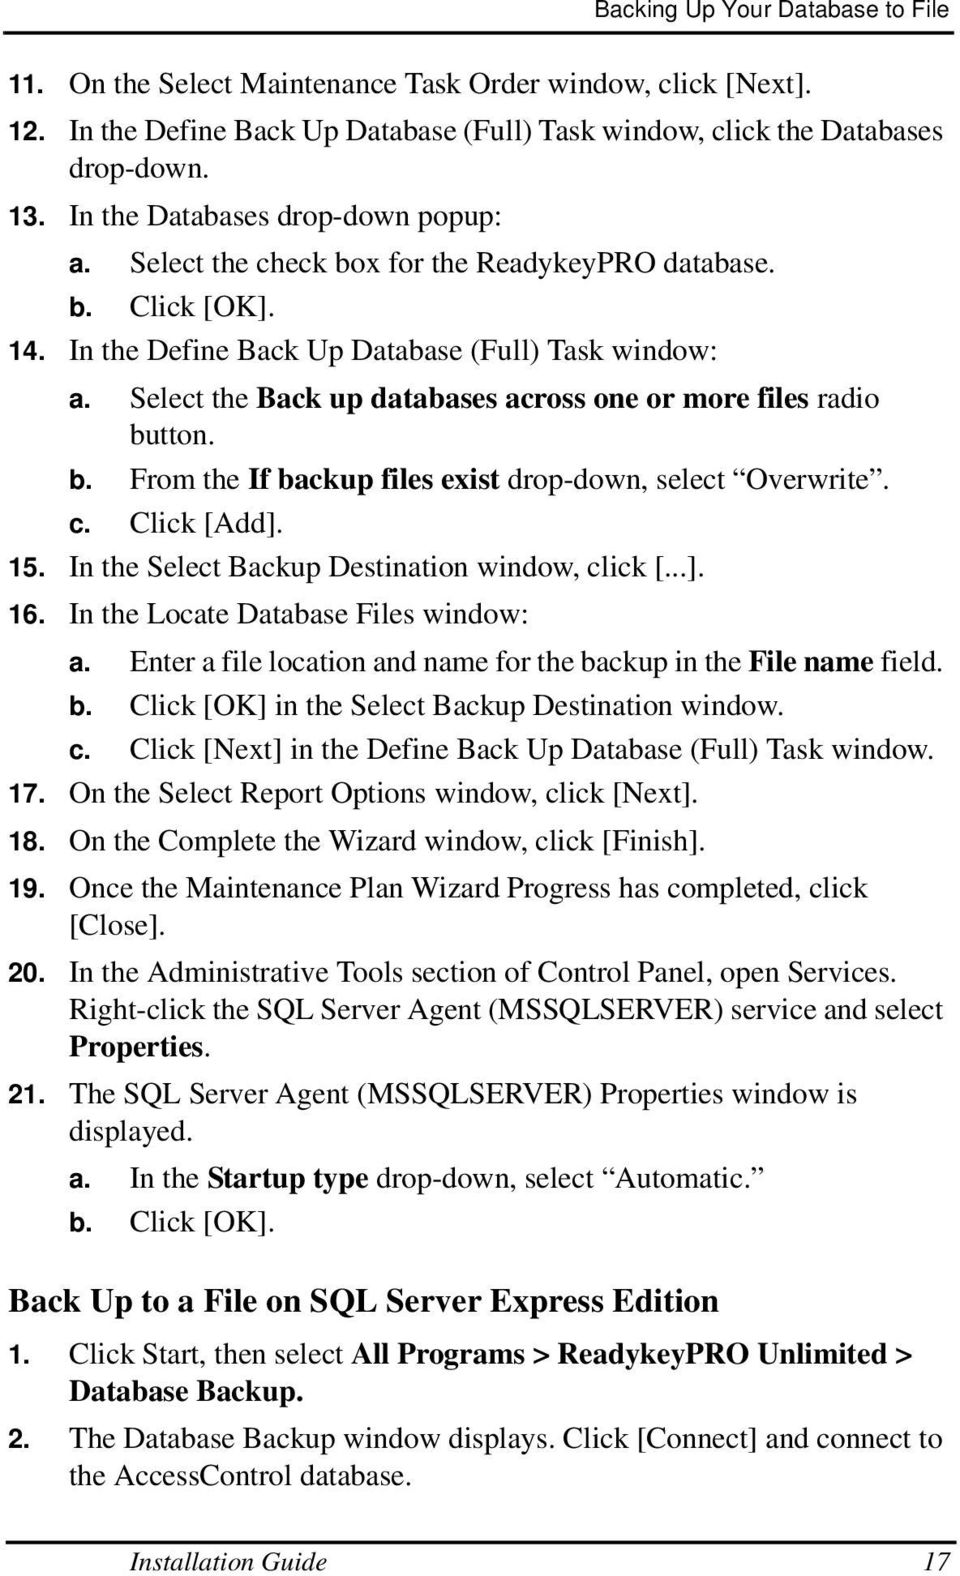 Select the Back up databases across one or more files radio button. b. From the If backup files exist drop-down, select Overwrite. c. Click [Add]. 15. In the Select Backup Destination window, click [.